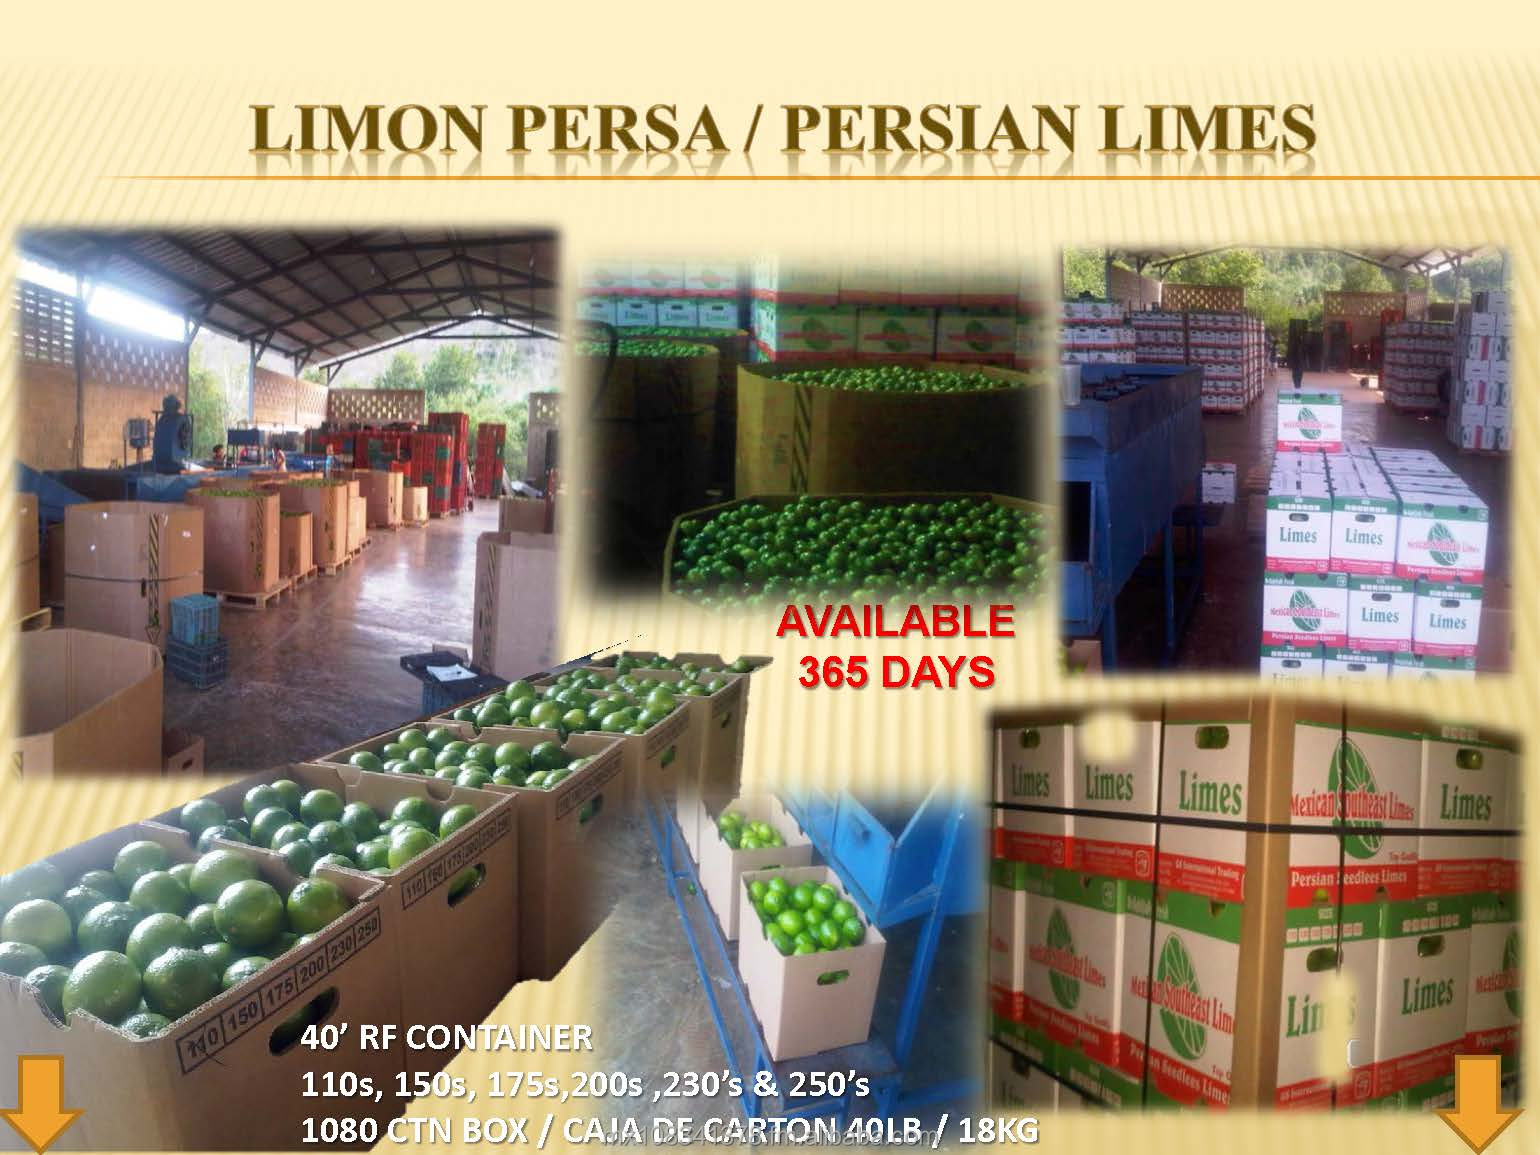 PERSIAN LIMES FROM MEXICO